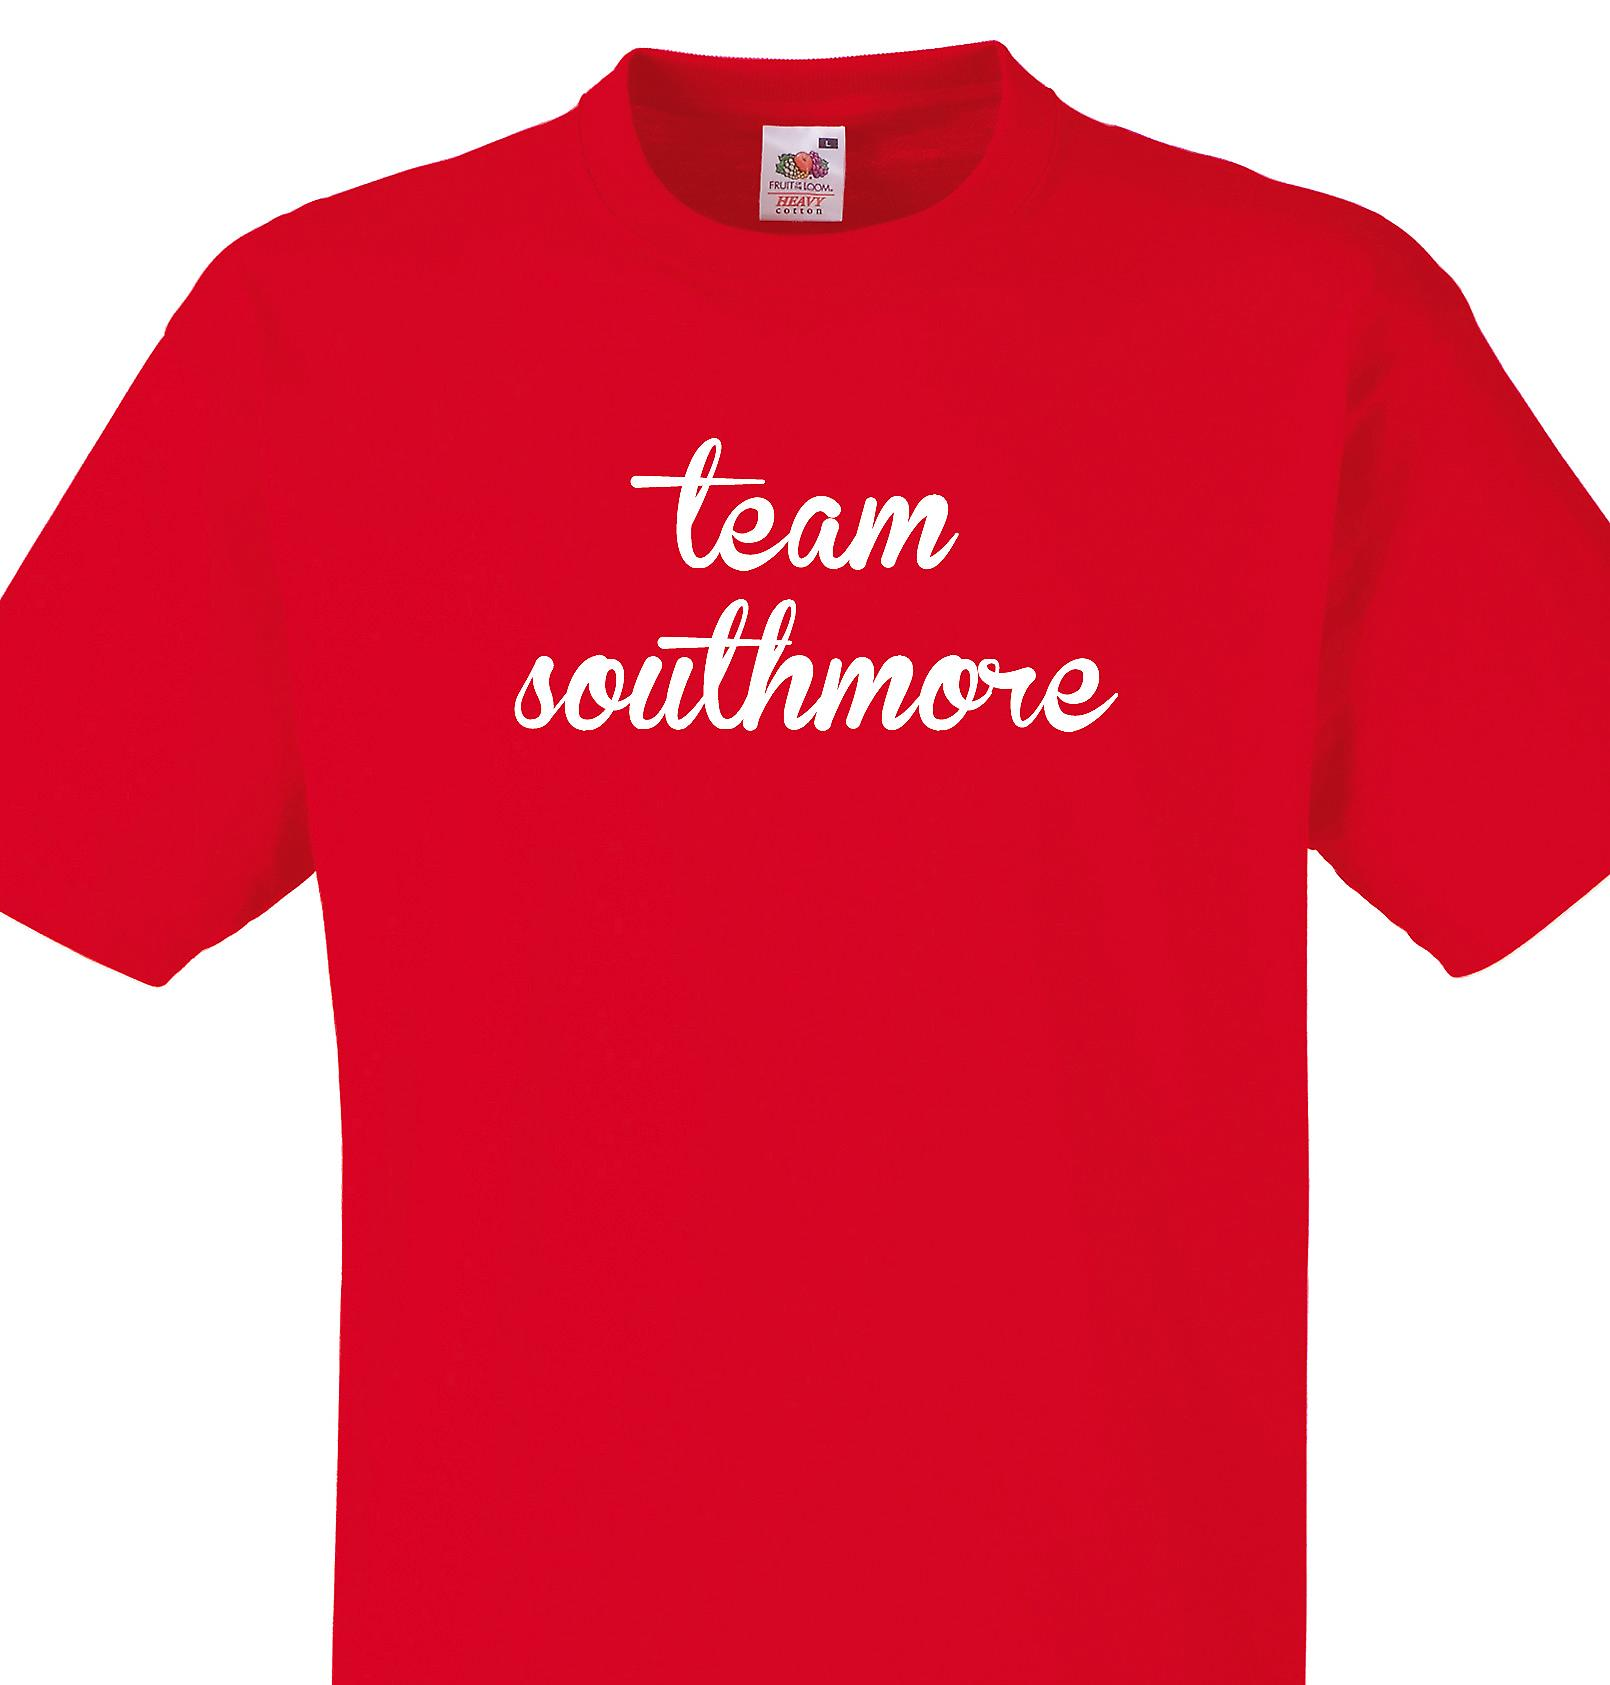 Team Southmore Red T shirt